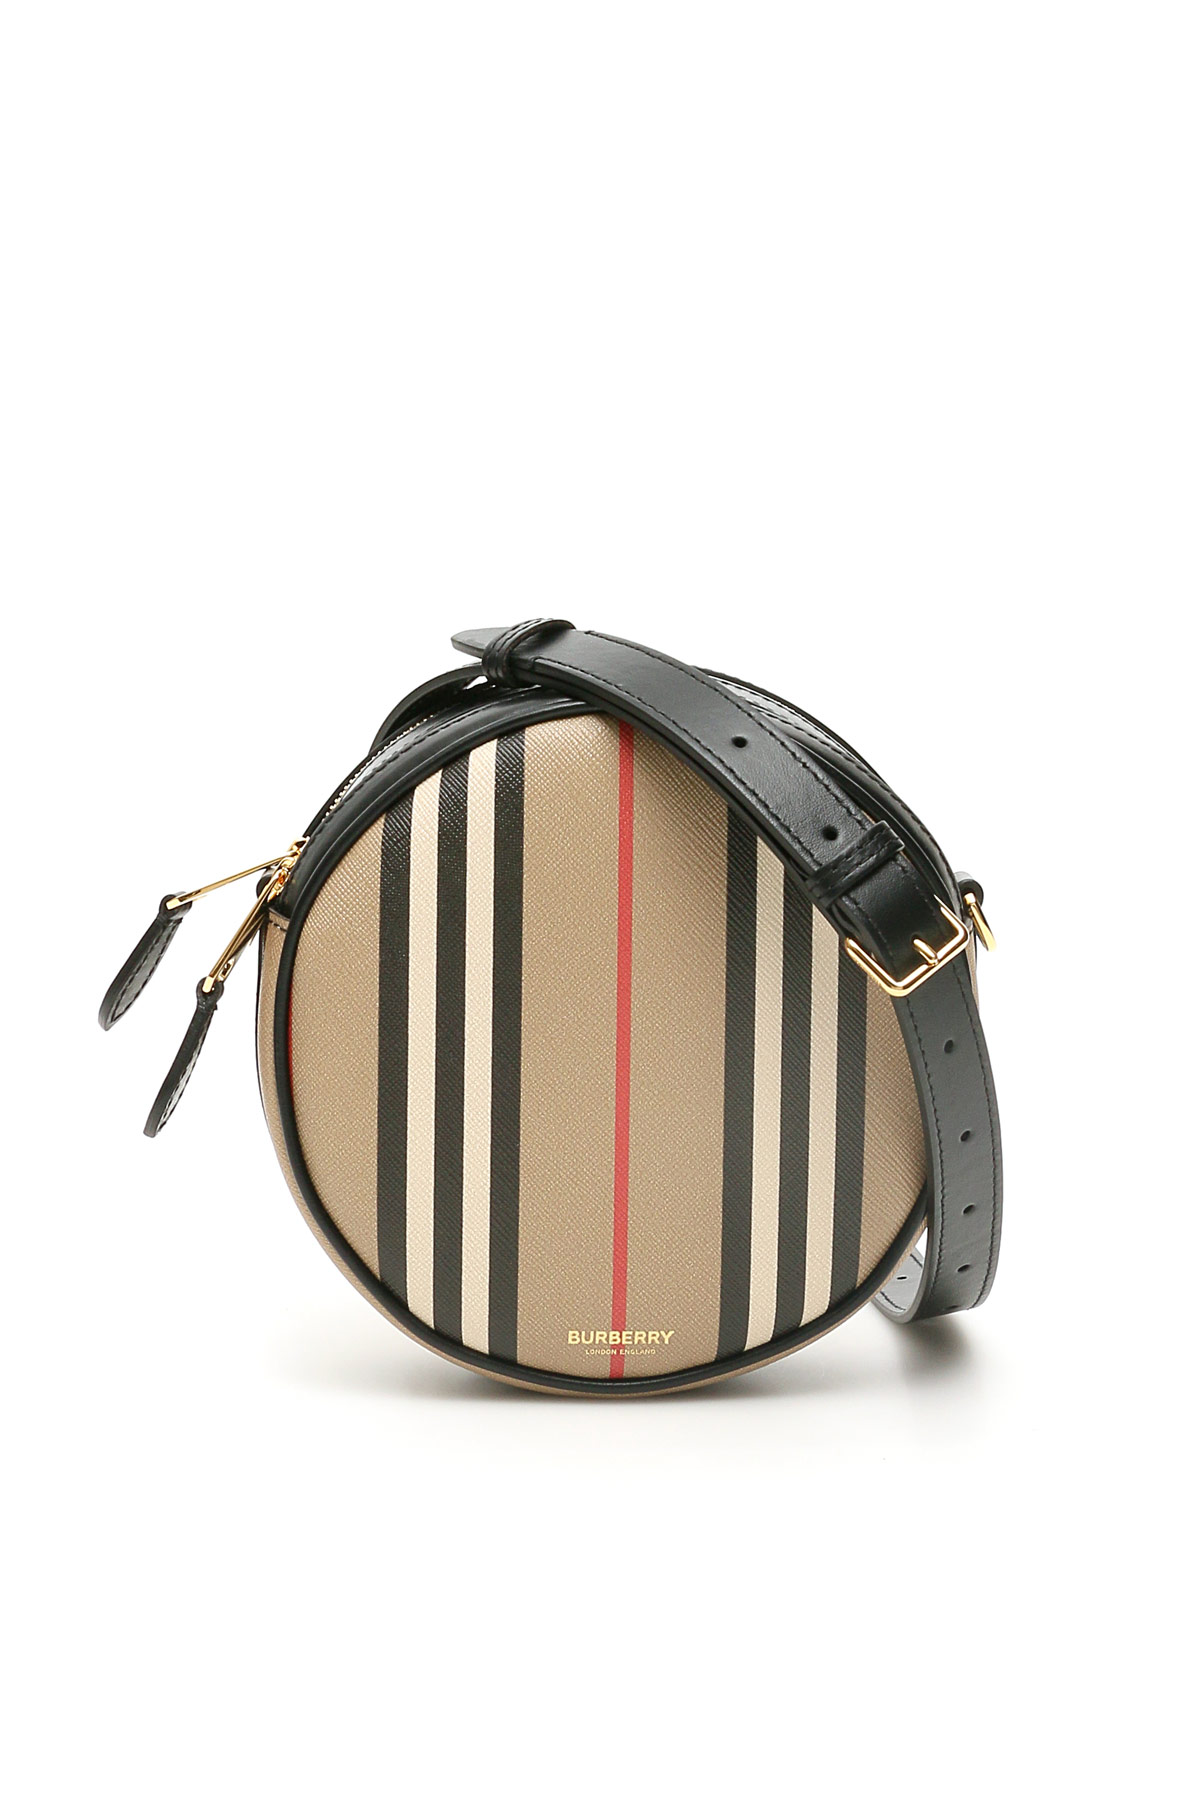 BURBERRY LOUISE ROUND BAG OS Beige, Black, Red Leather, Cotton